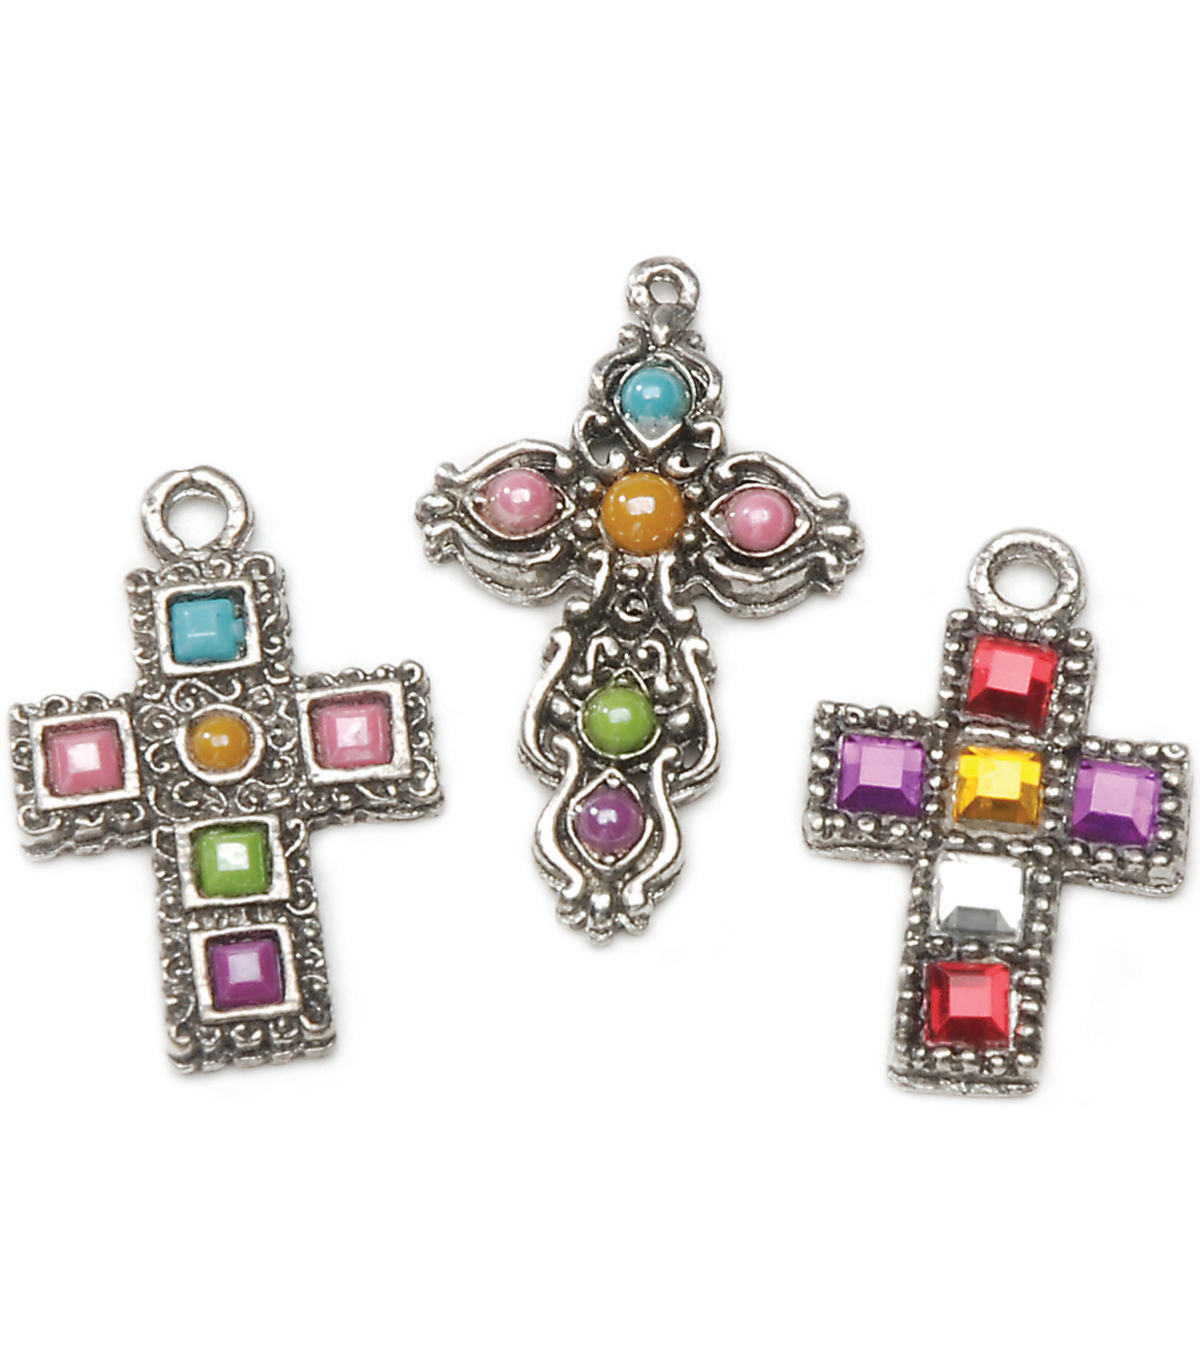 Rhinestone Cross Charms 3 Assorted/Pk-Antique Silver